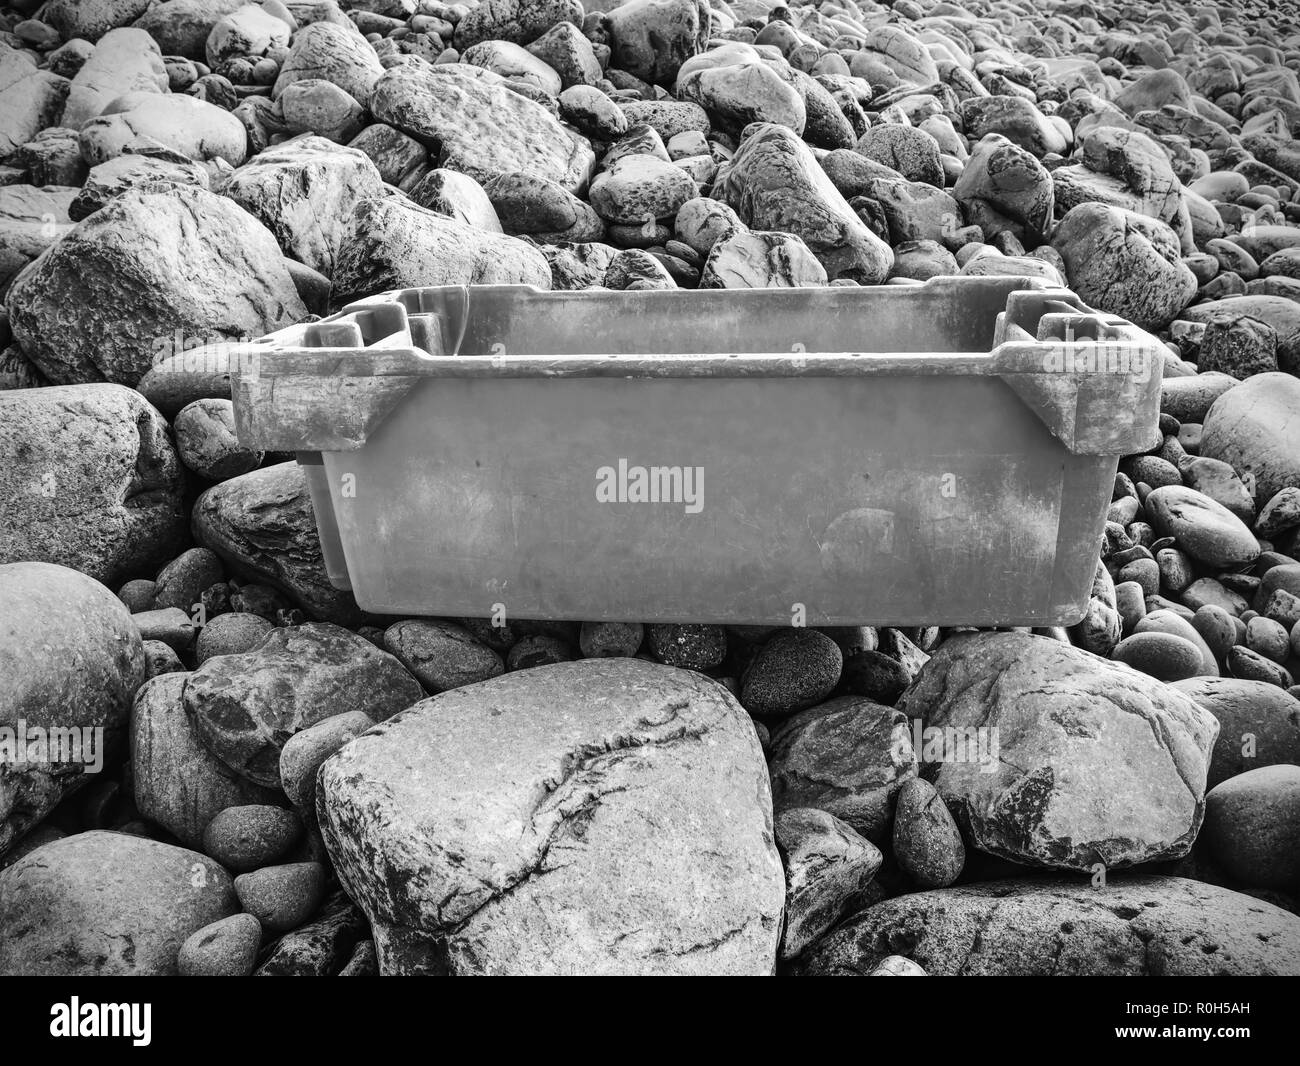 Dangerous rubbish on a stony beach.  Photo showing pollution problem. Dangerous garbage ejected from the sea on remote beaches. Stock Photo